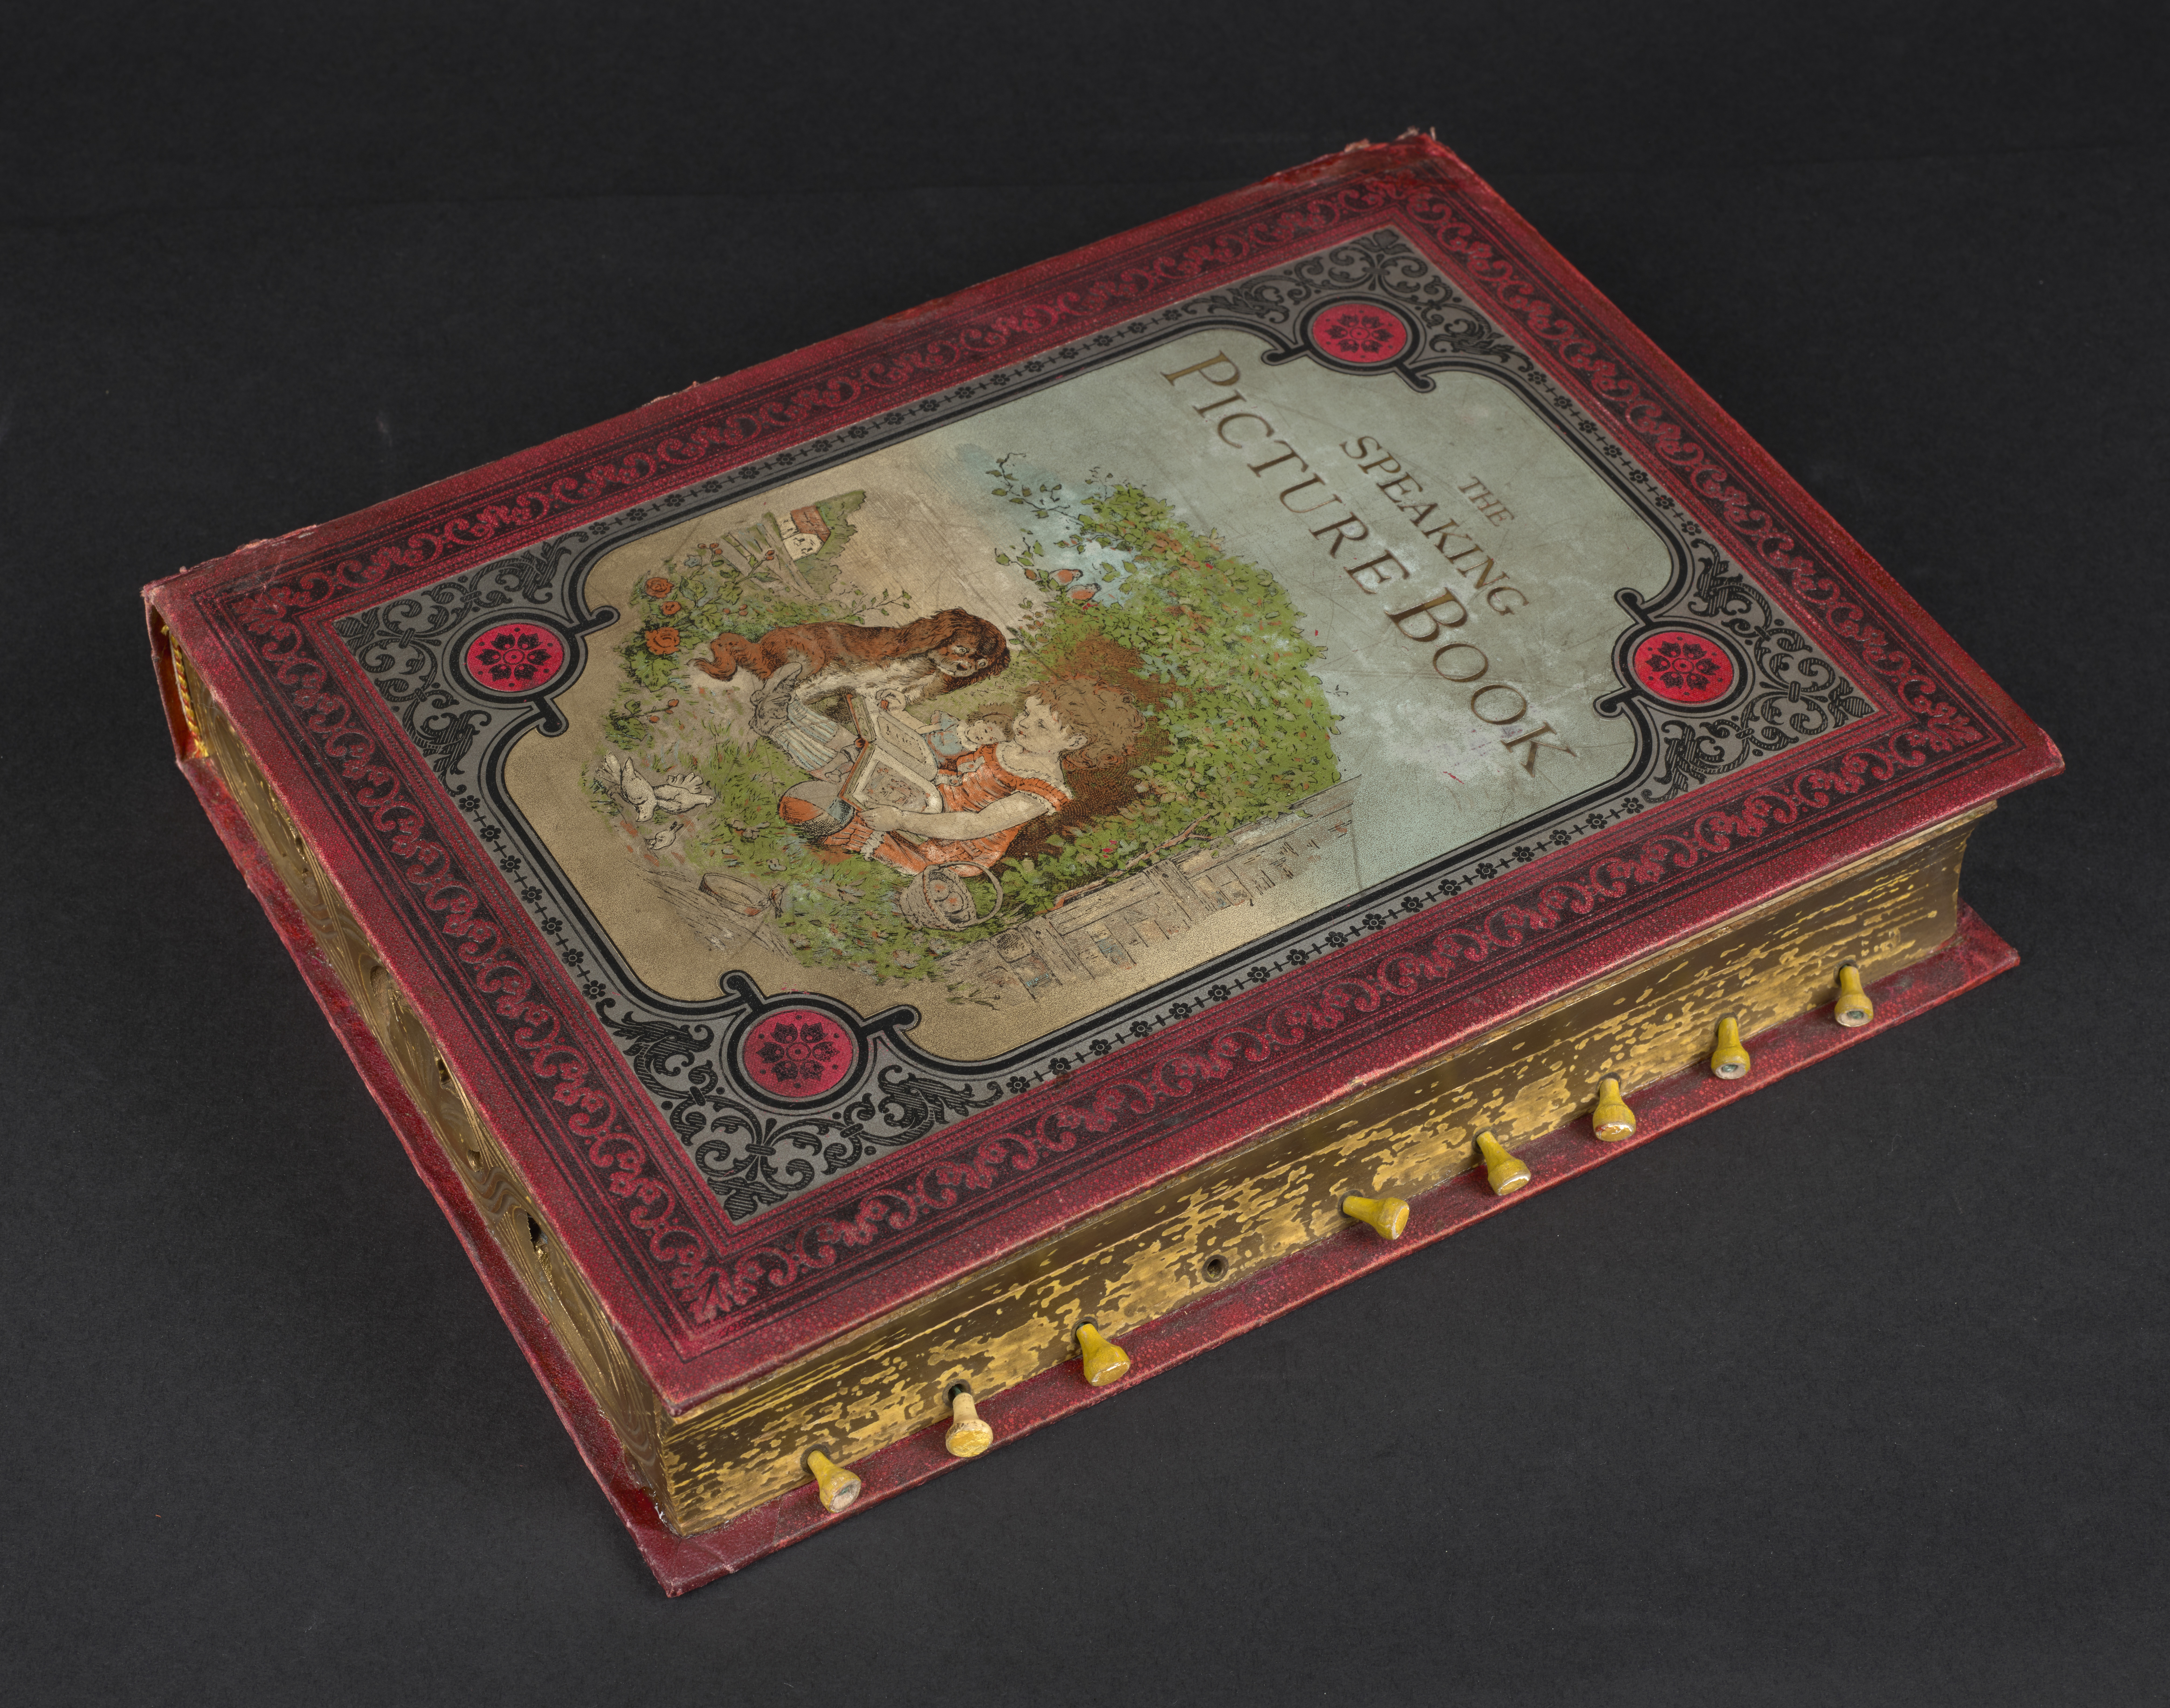 A hard backed book with an illustration of a child and a dog on the cover. Eight little handles are attached to the side of the book.